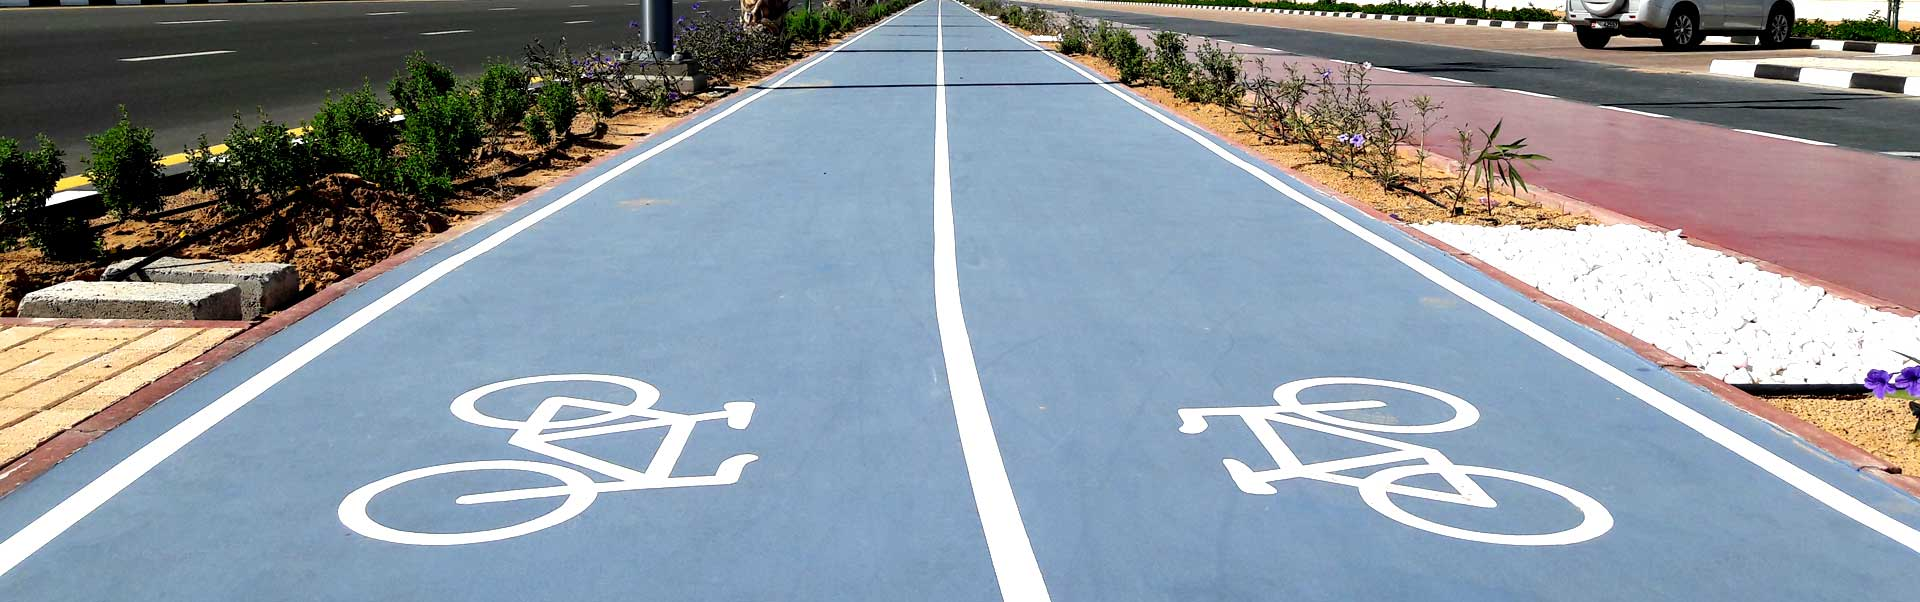 BICYCLE-TRACK-ALHAMRA.jpg